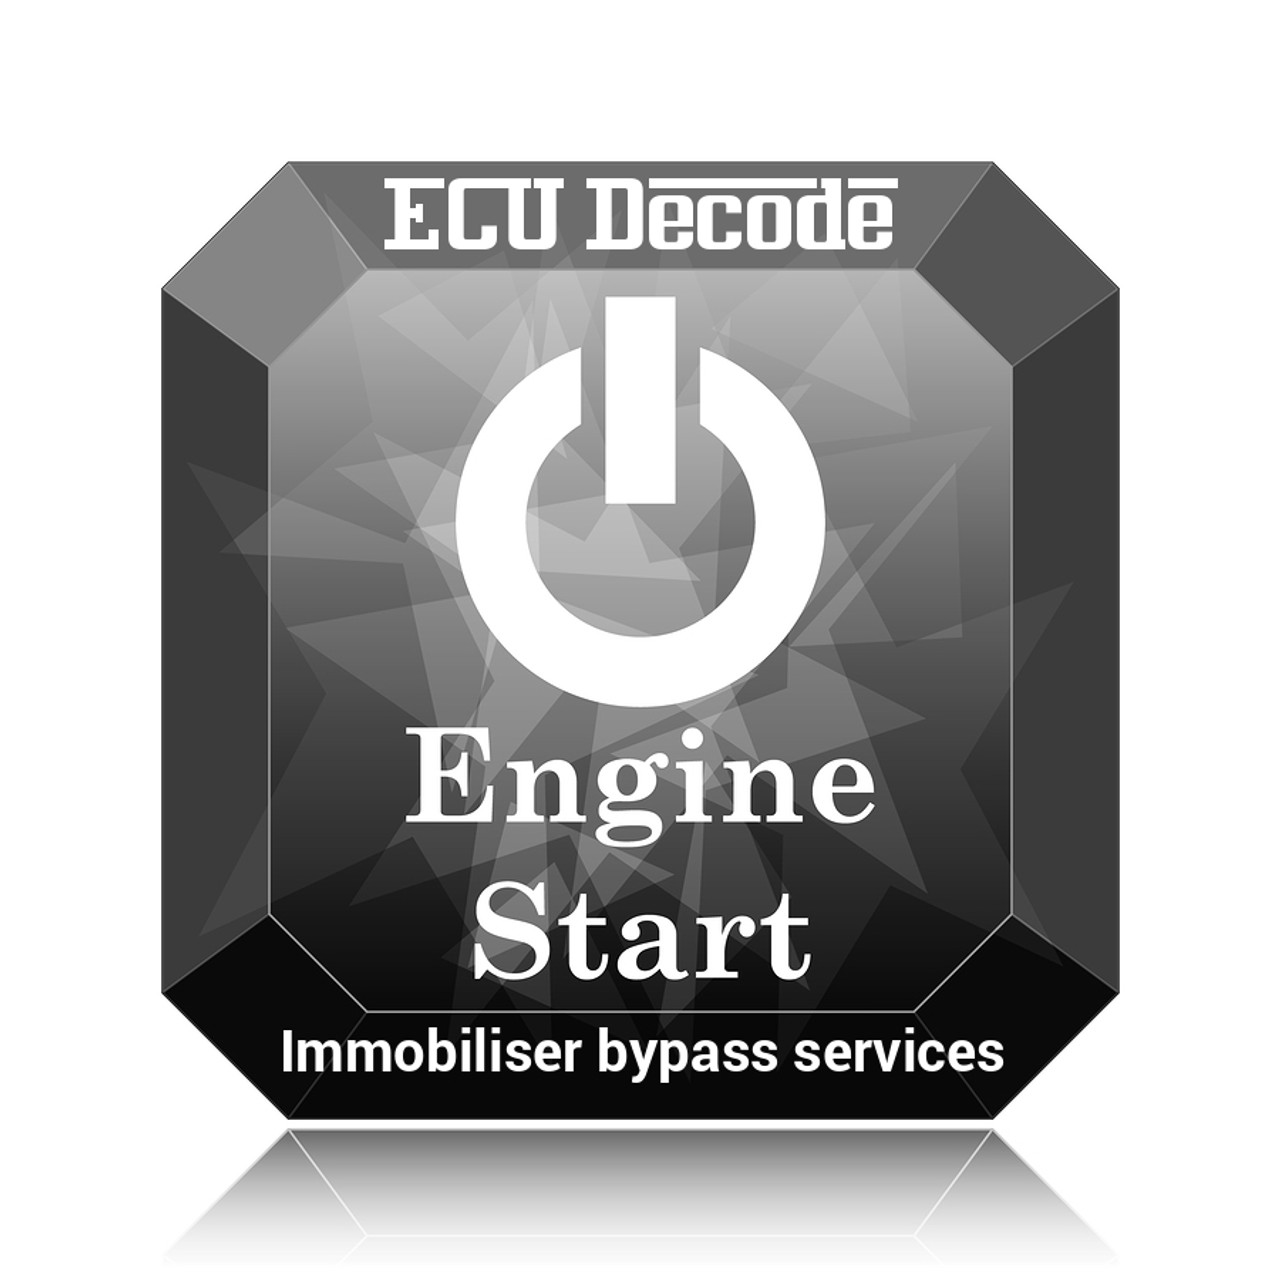 Subaru NATS4 - NATS 4 Immobiliser Bypass Services - ECU Decode Limited